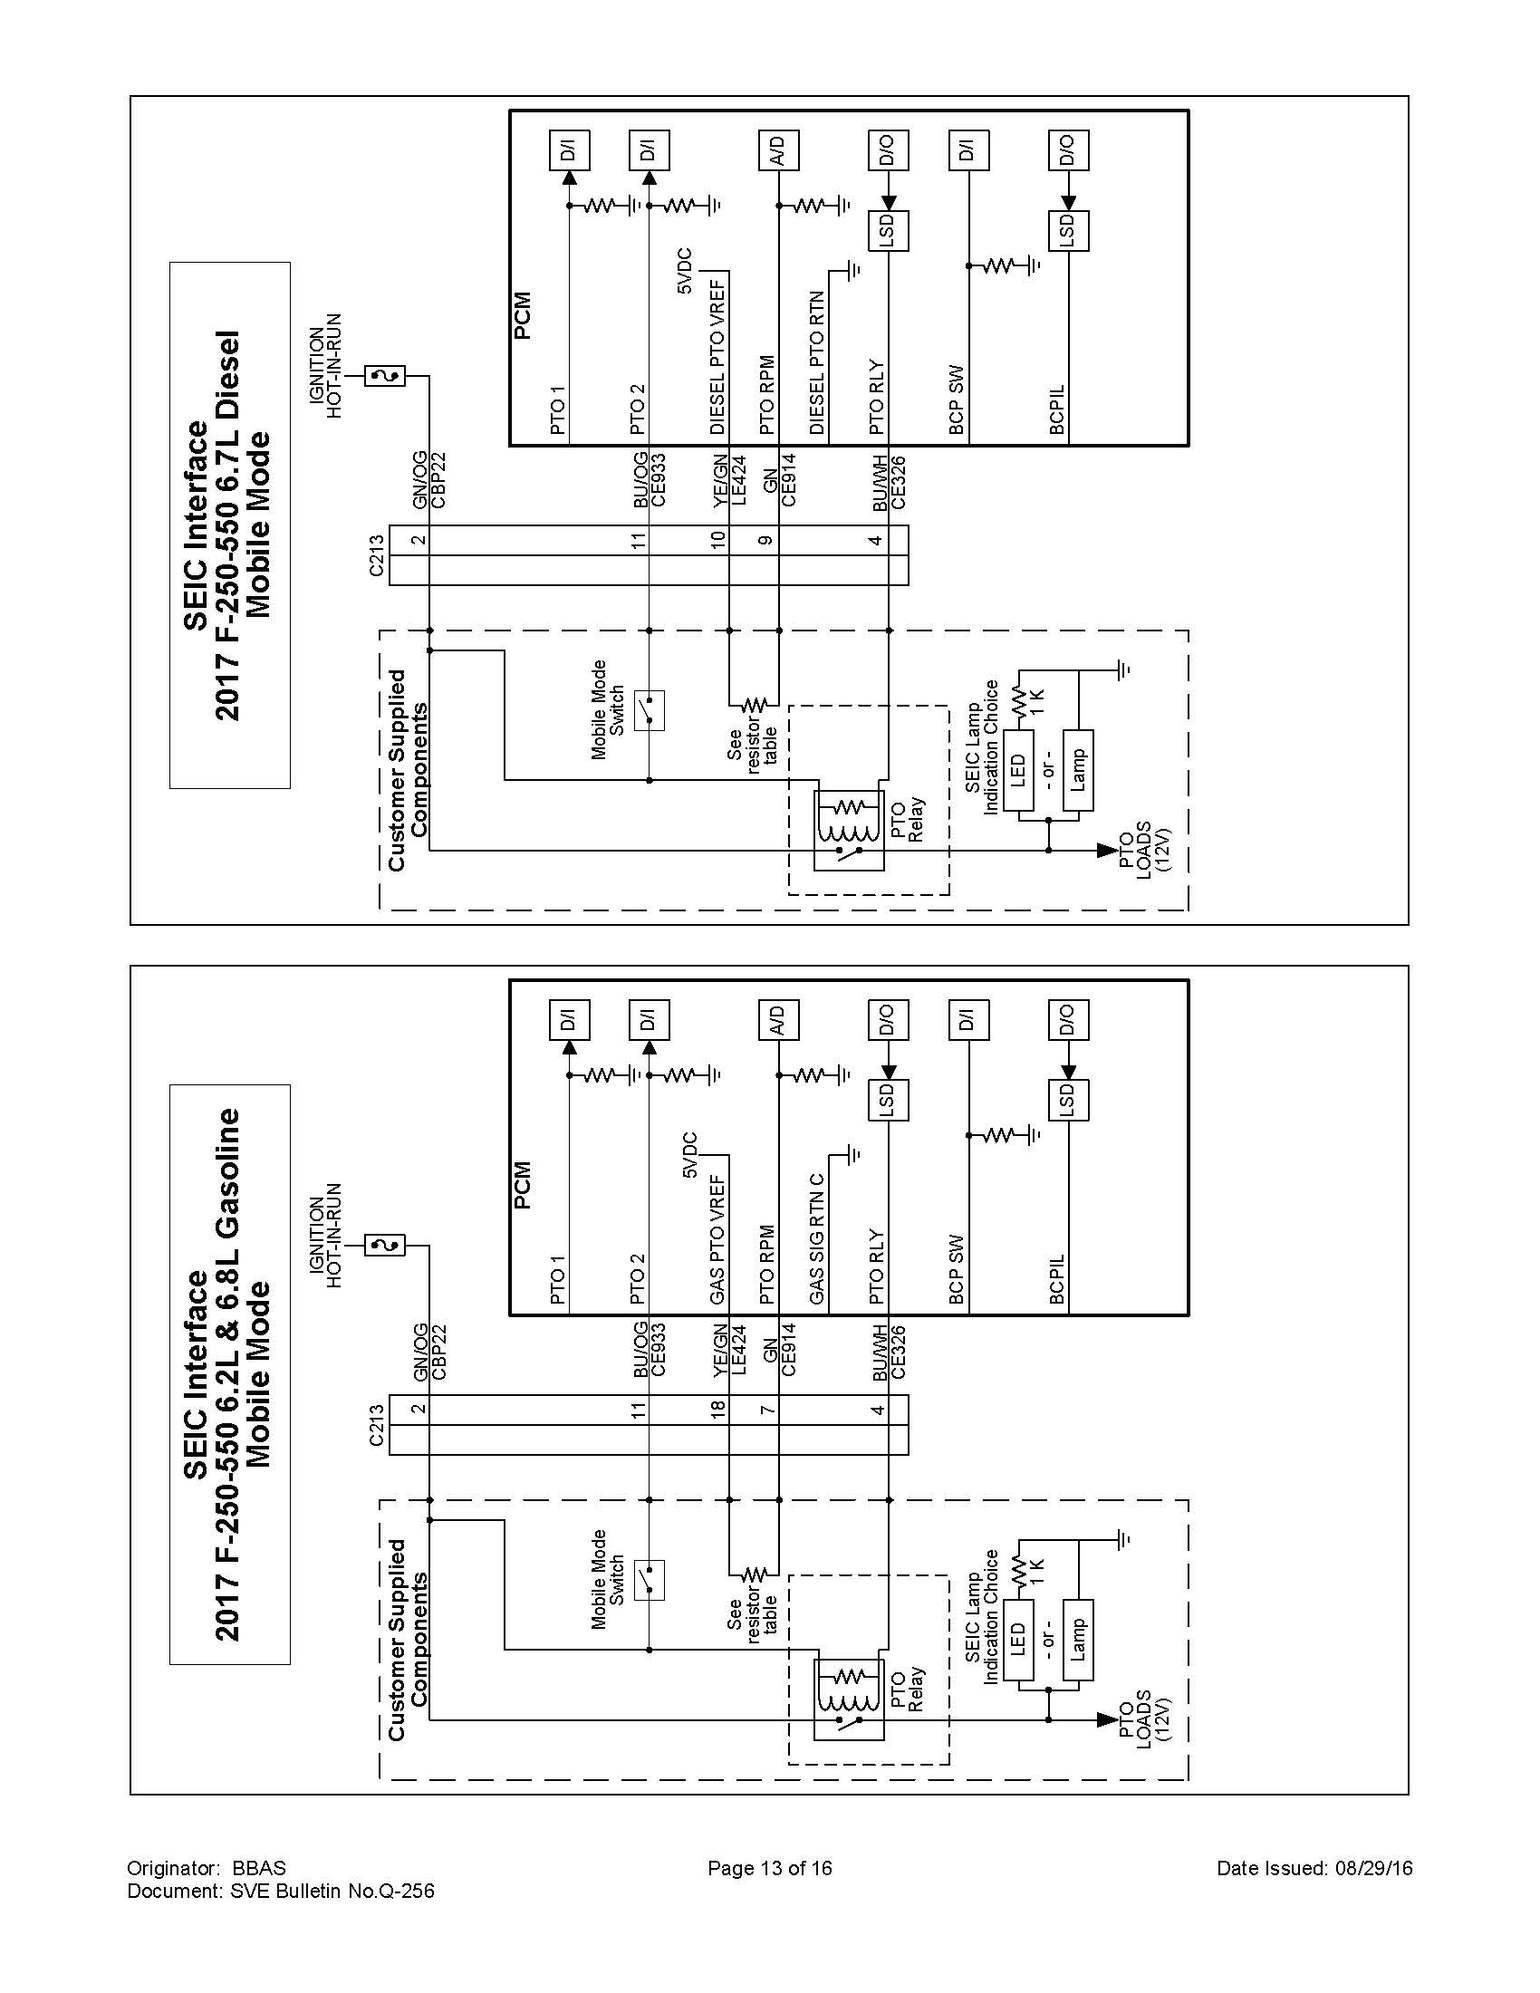 Goodman A36 10 Wiring Diagram moreover Wiring Diagram For Central Air And Heat additionally Goodman Heat Pump Thermostat Wiring Diagram in addition Grandaire Wiring Diagram furthermore Goodman Heat Pump Schematic Diagram. on 2 ton trane heat pump wiring diagram